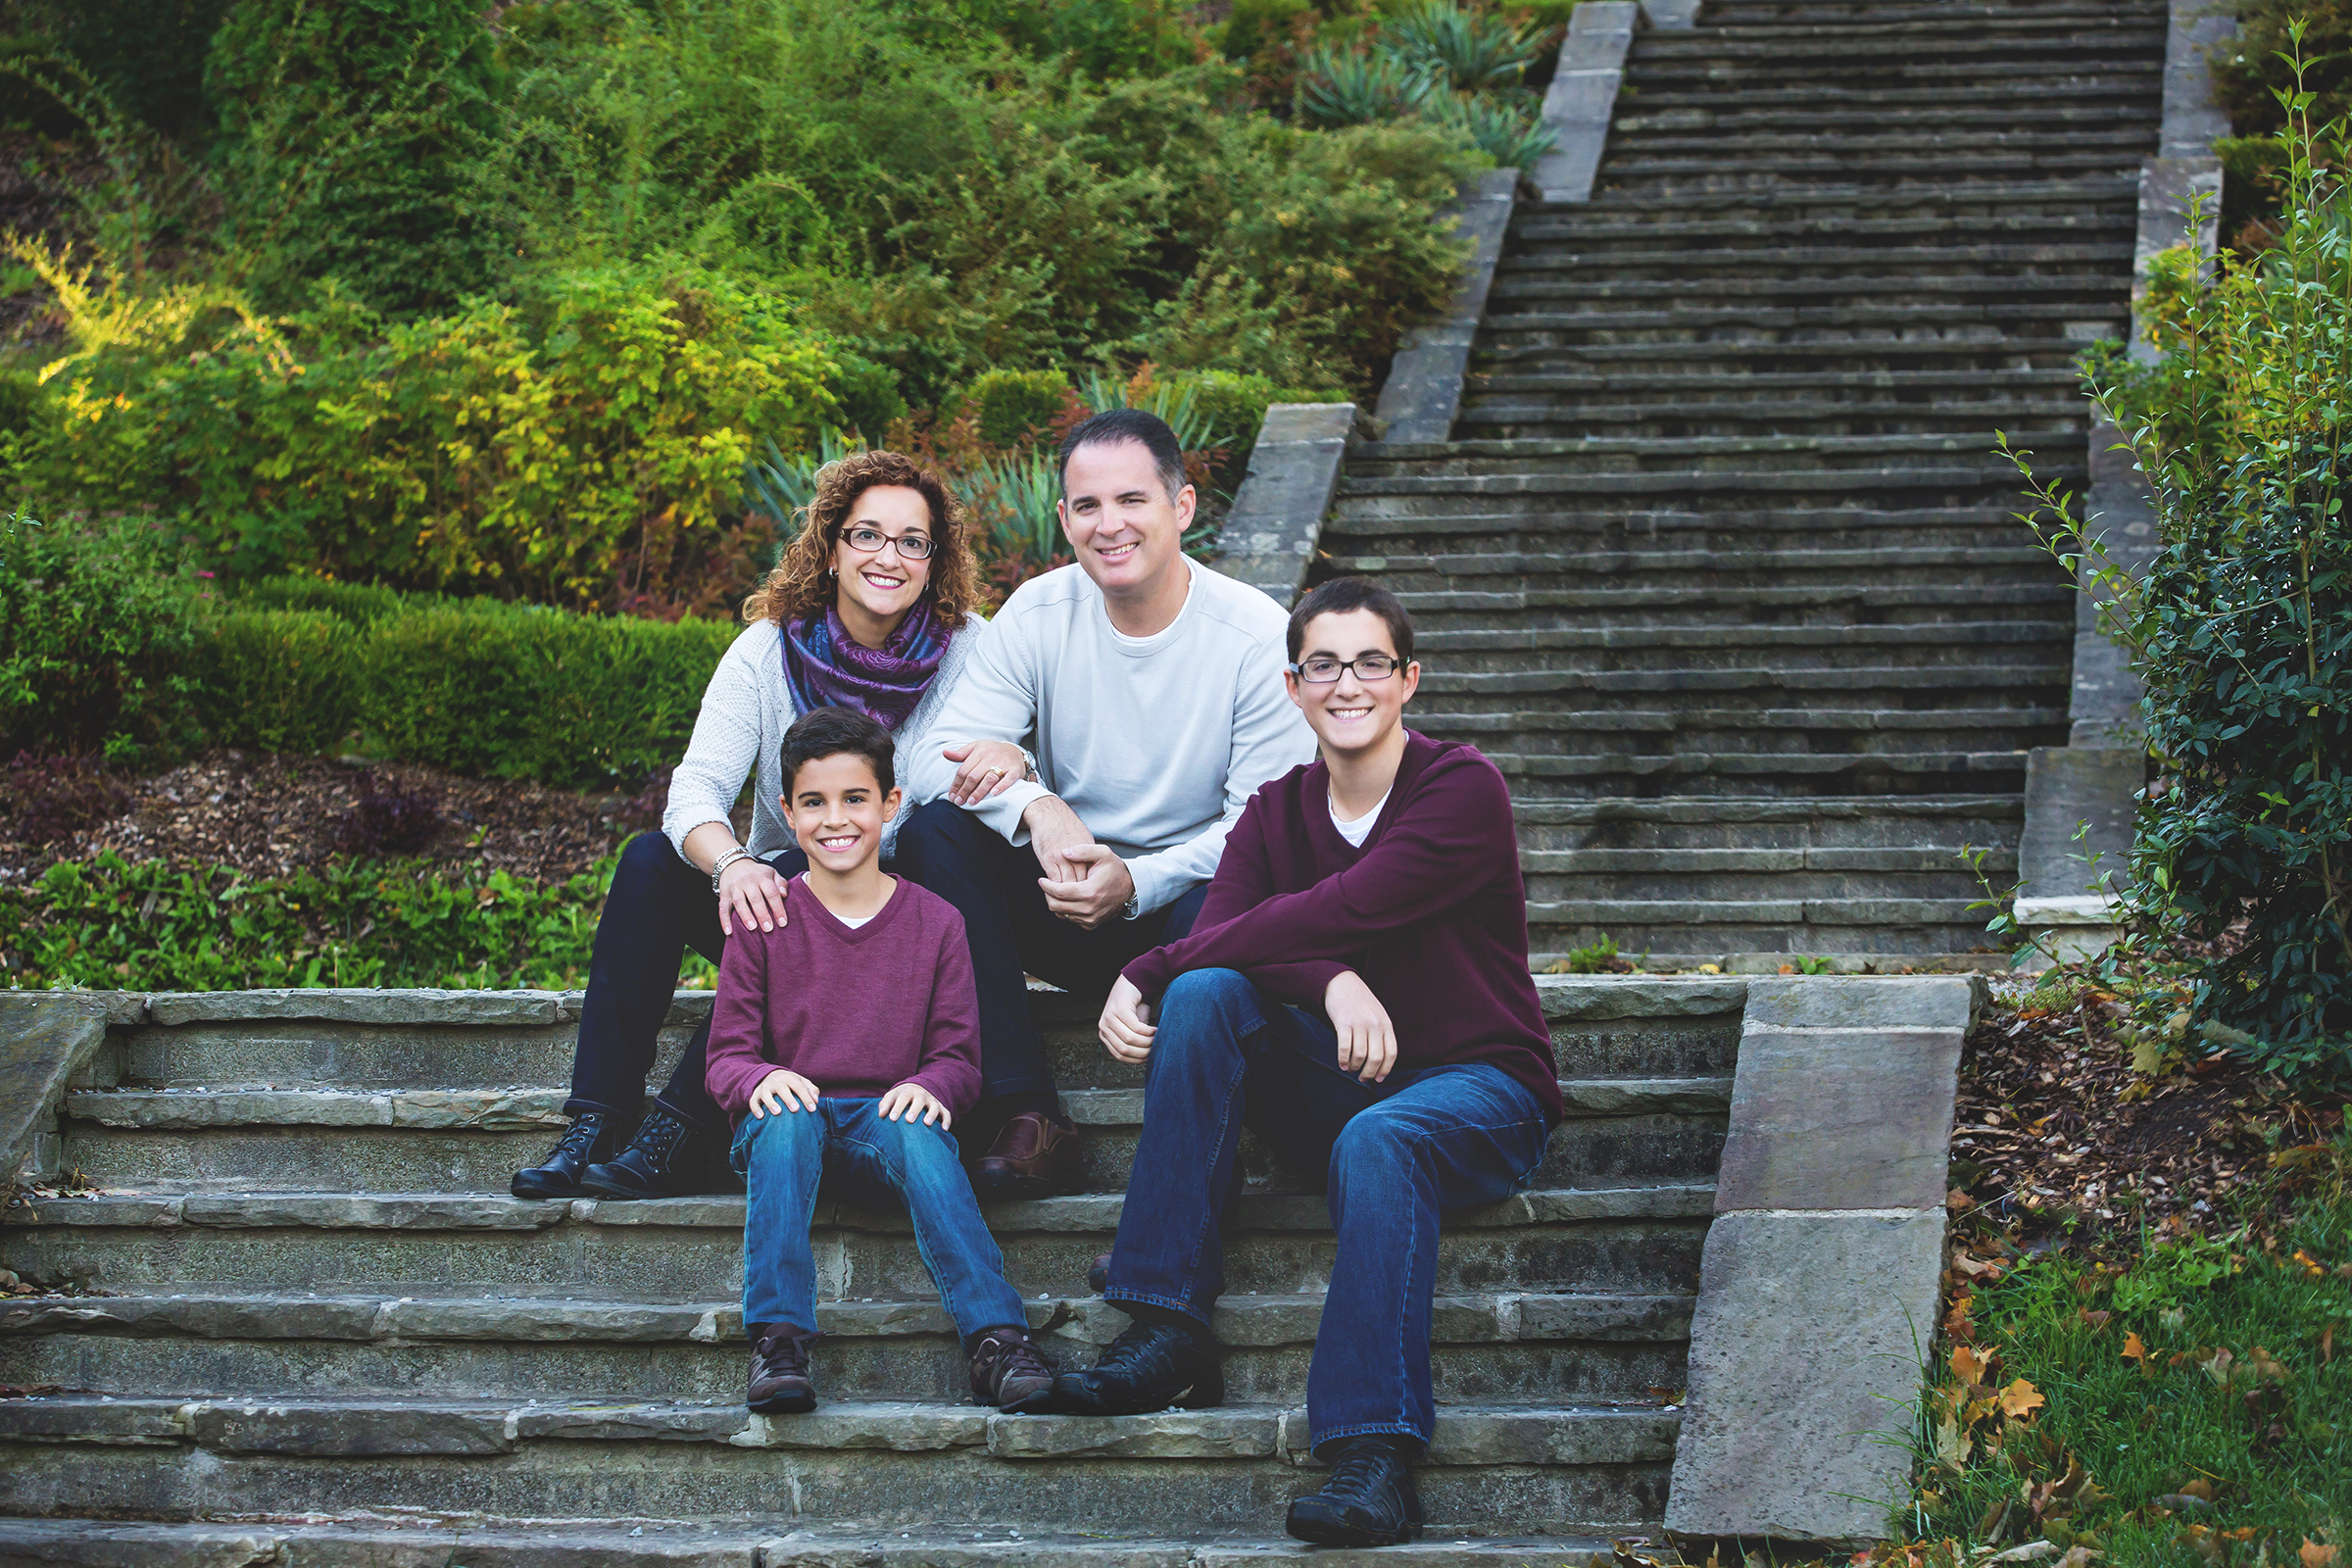 Family-Portraits-Hamilton-Stoney-Creek-Oakville-Burlington-Niagara-Photography-Moments-by-Lauren-Photographer-Lifestyle-Photo-Image1.png